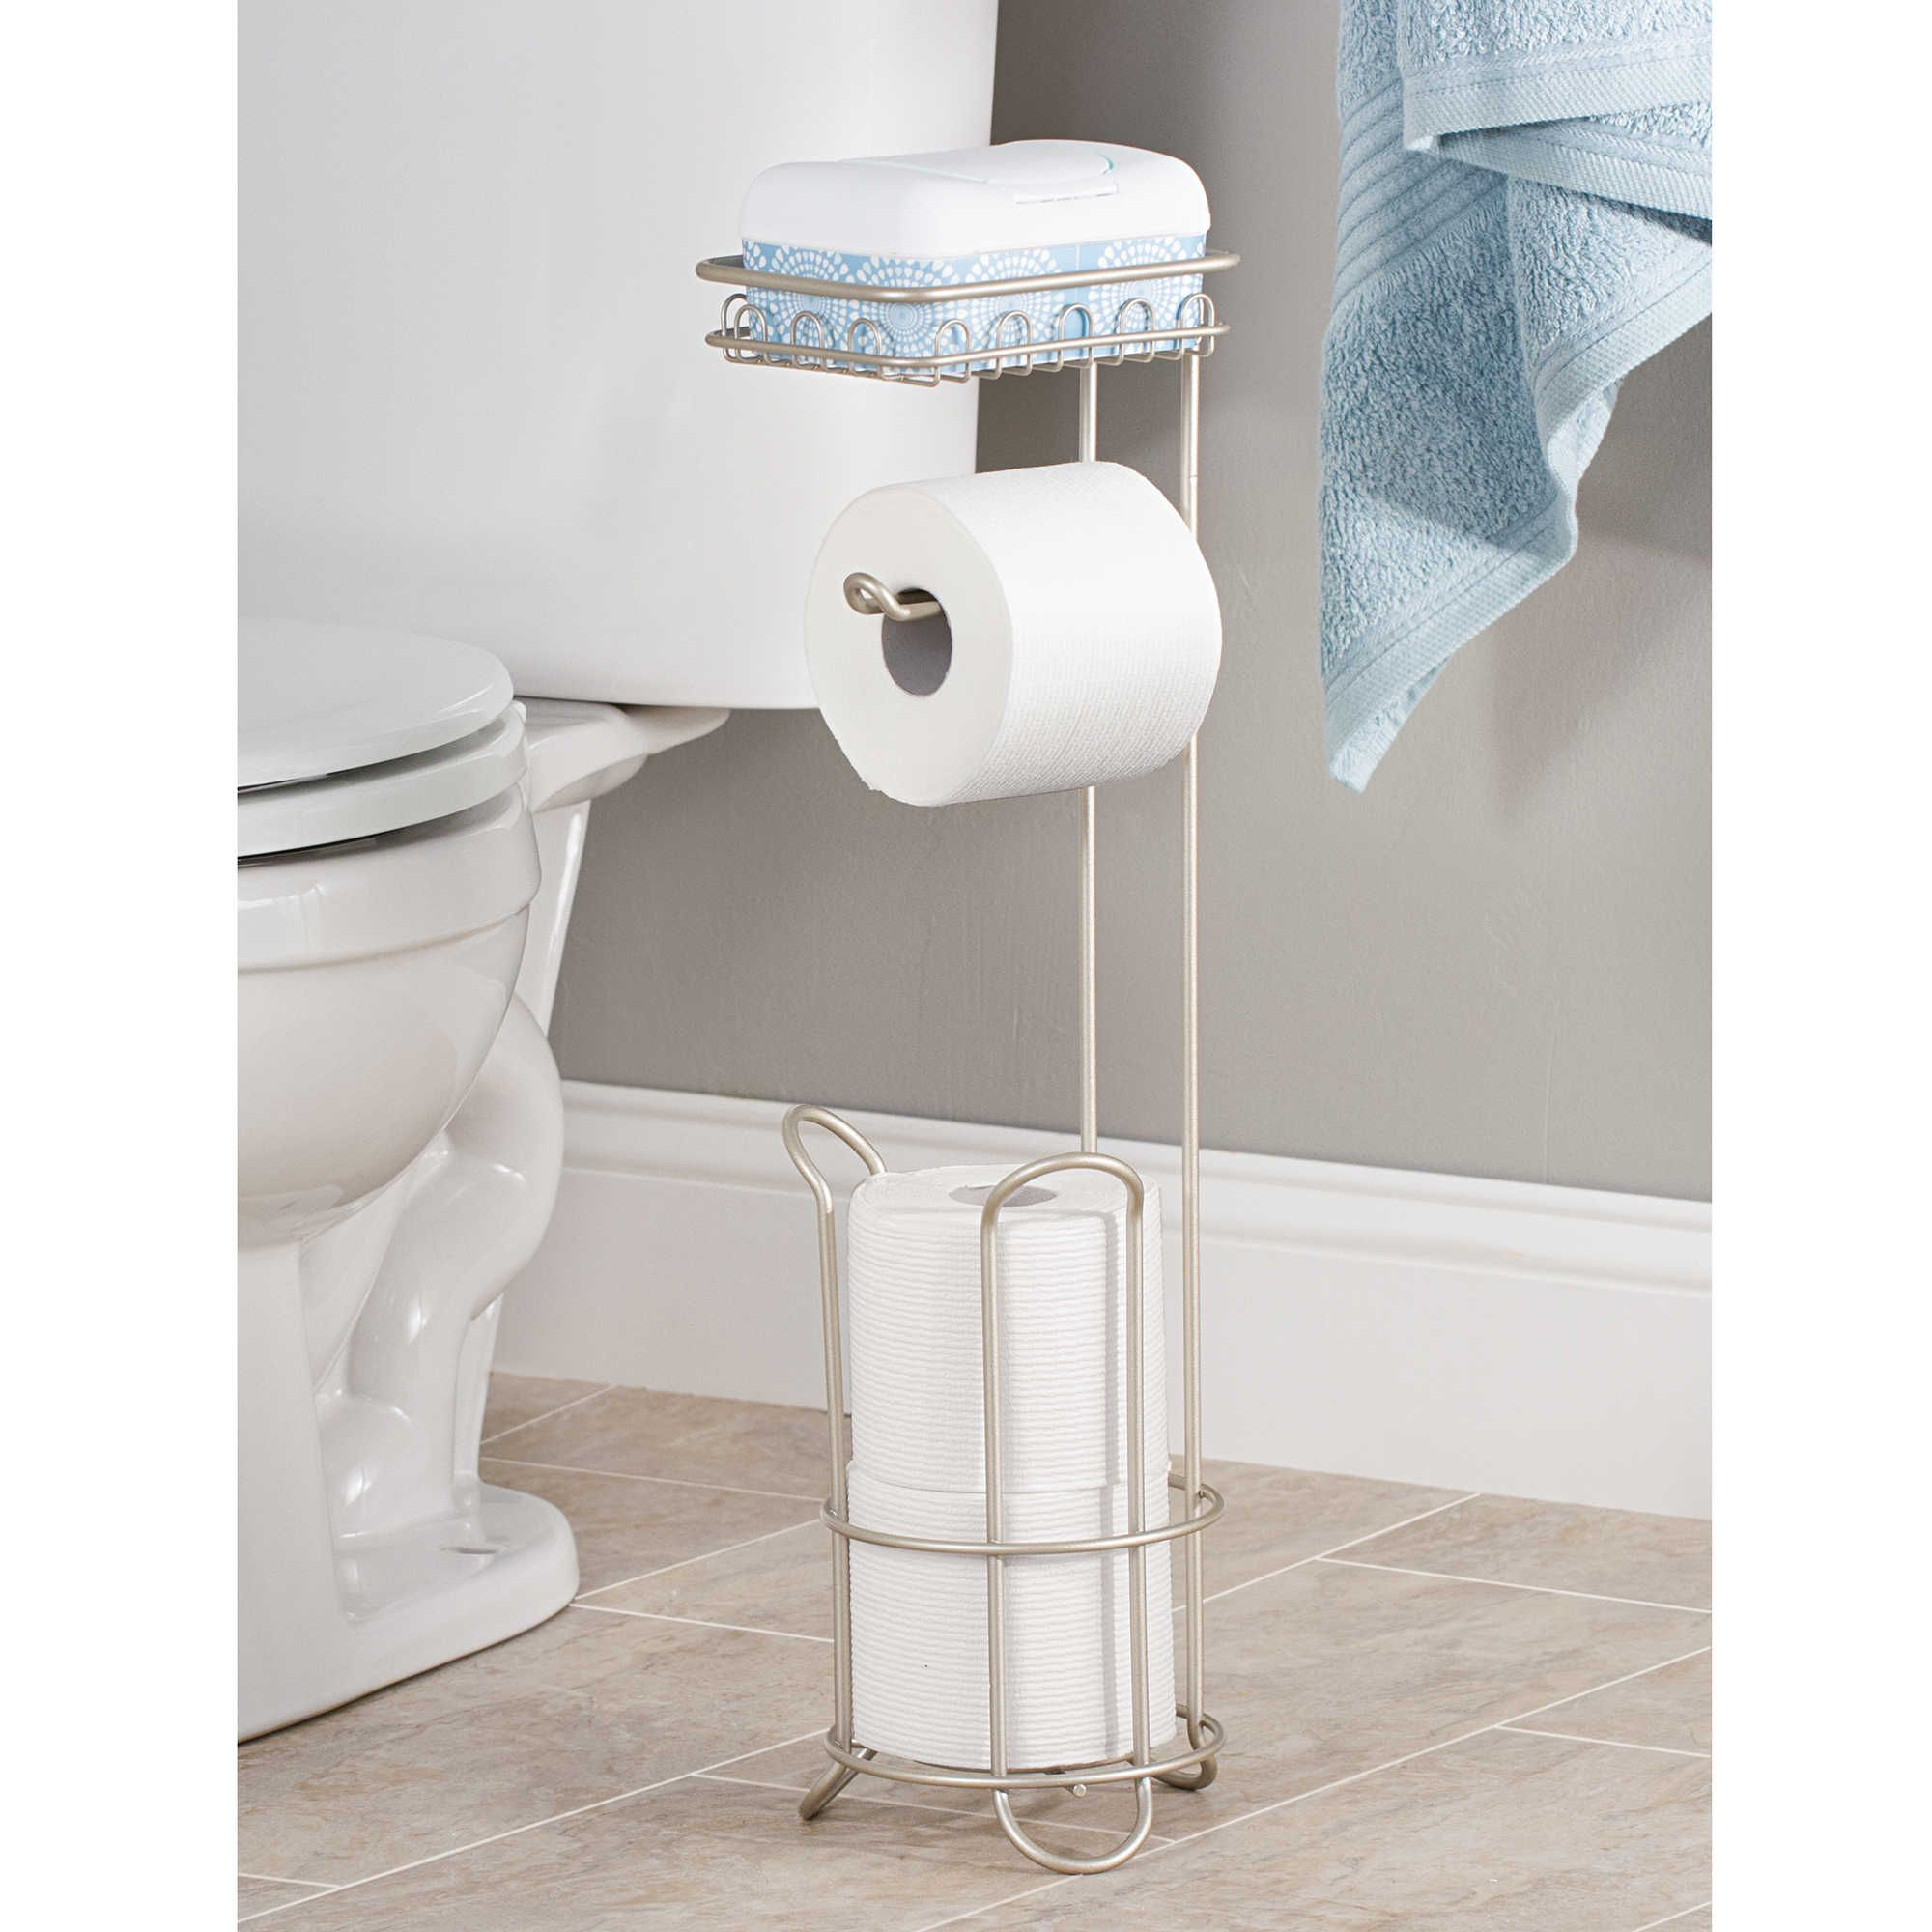 I Love That This Has A Place For Your Wet Wipes Erin Interdesign Classico Roll Toilet Paper Stand Toilet Paper Stand Toilet Paper Holder Toilet Paper